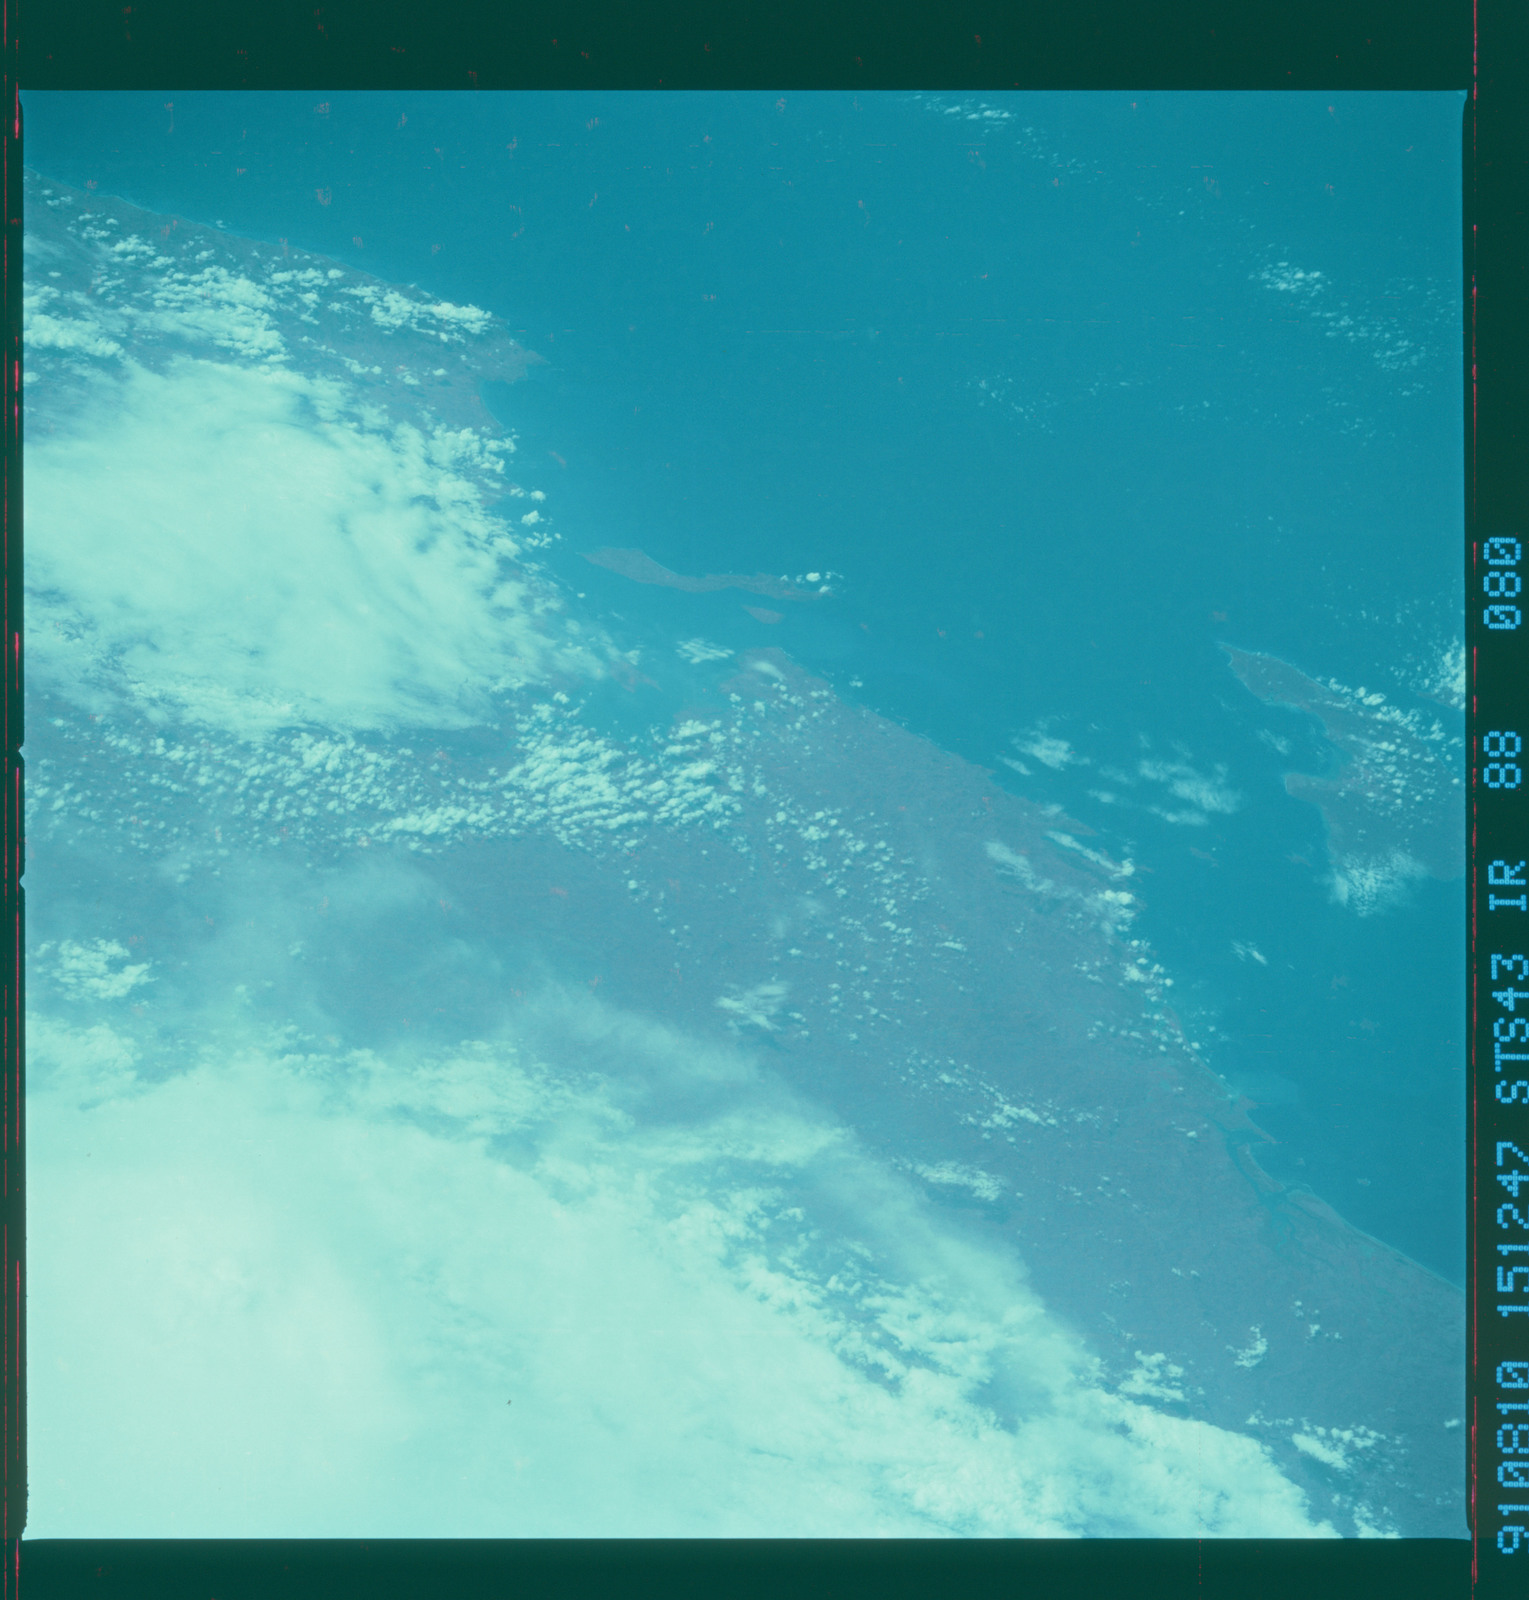 S43-88-080 - STS-043 - STS-43 earth observations